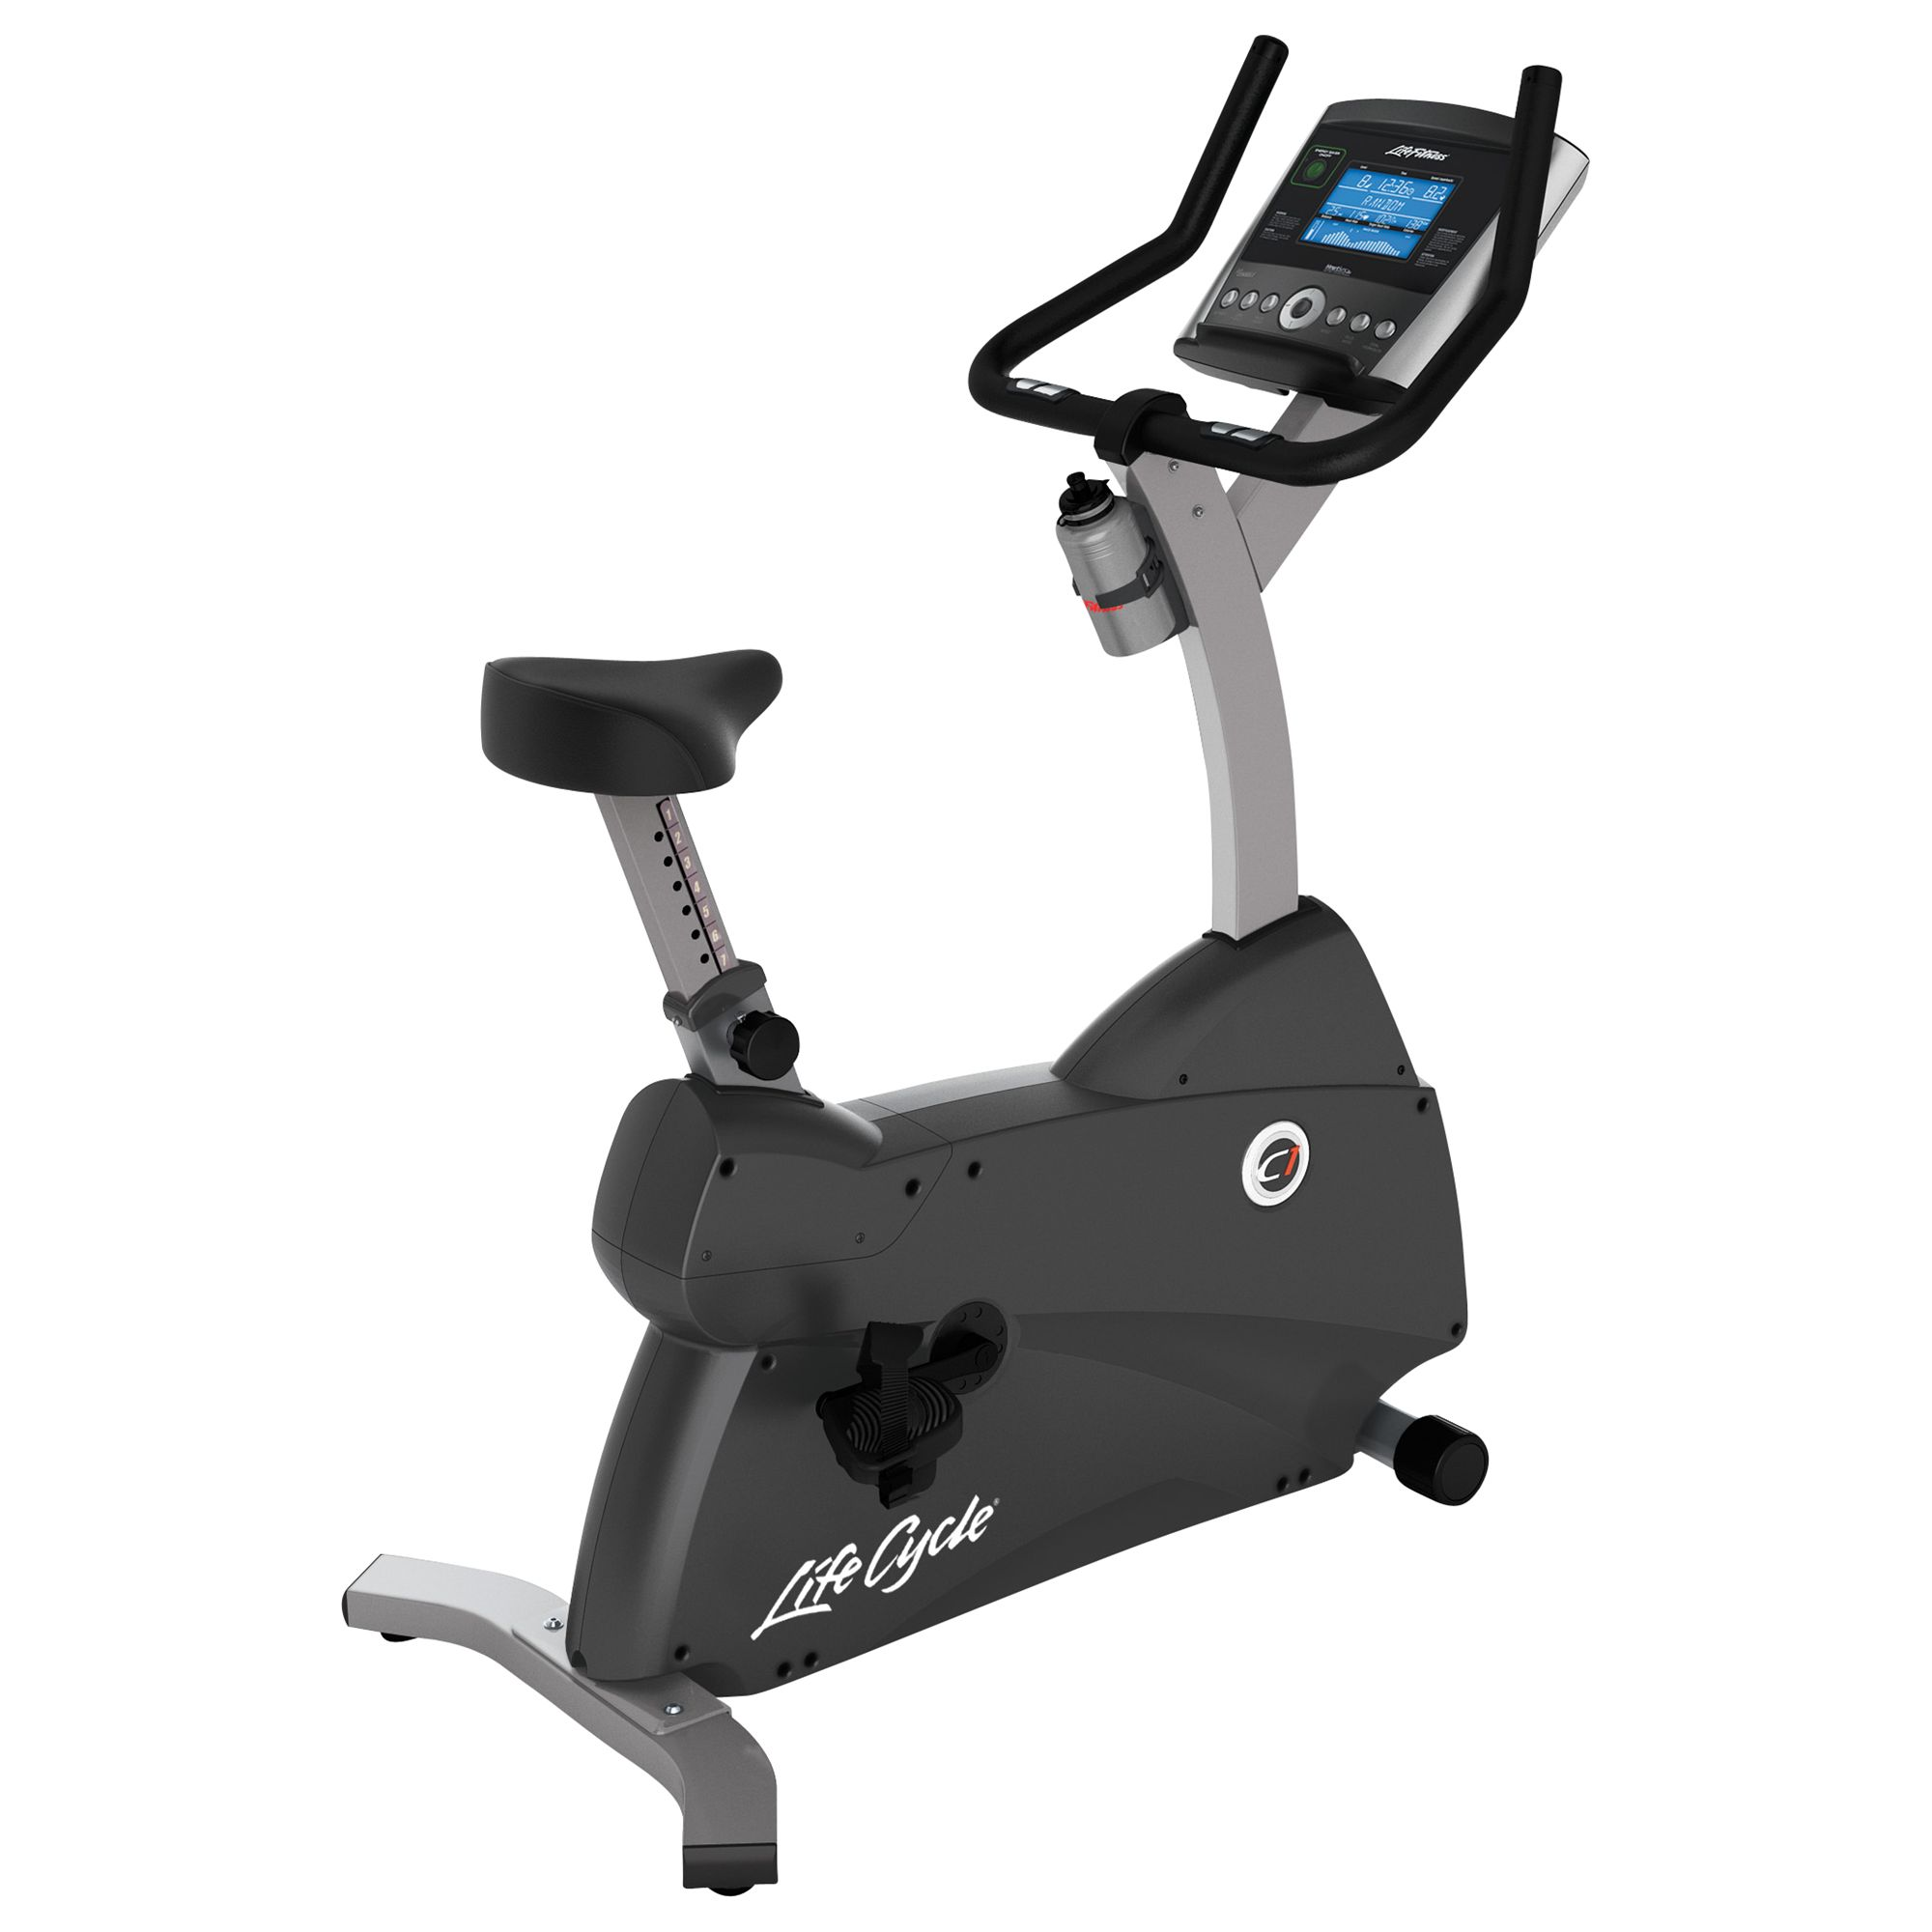 Life Fitness Life Fitness Lifecycle C1 Upright Exercise Bike with Go Console